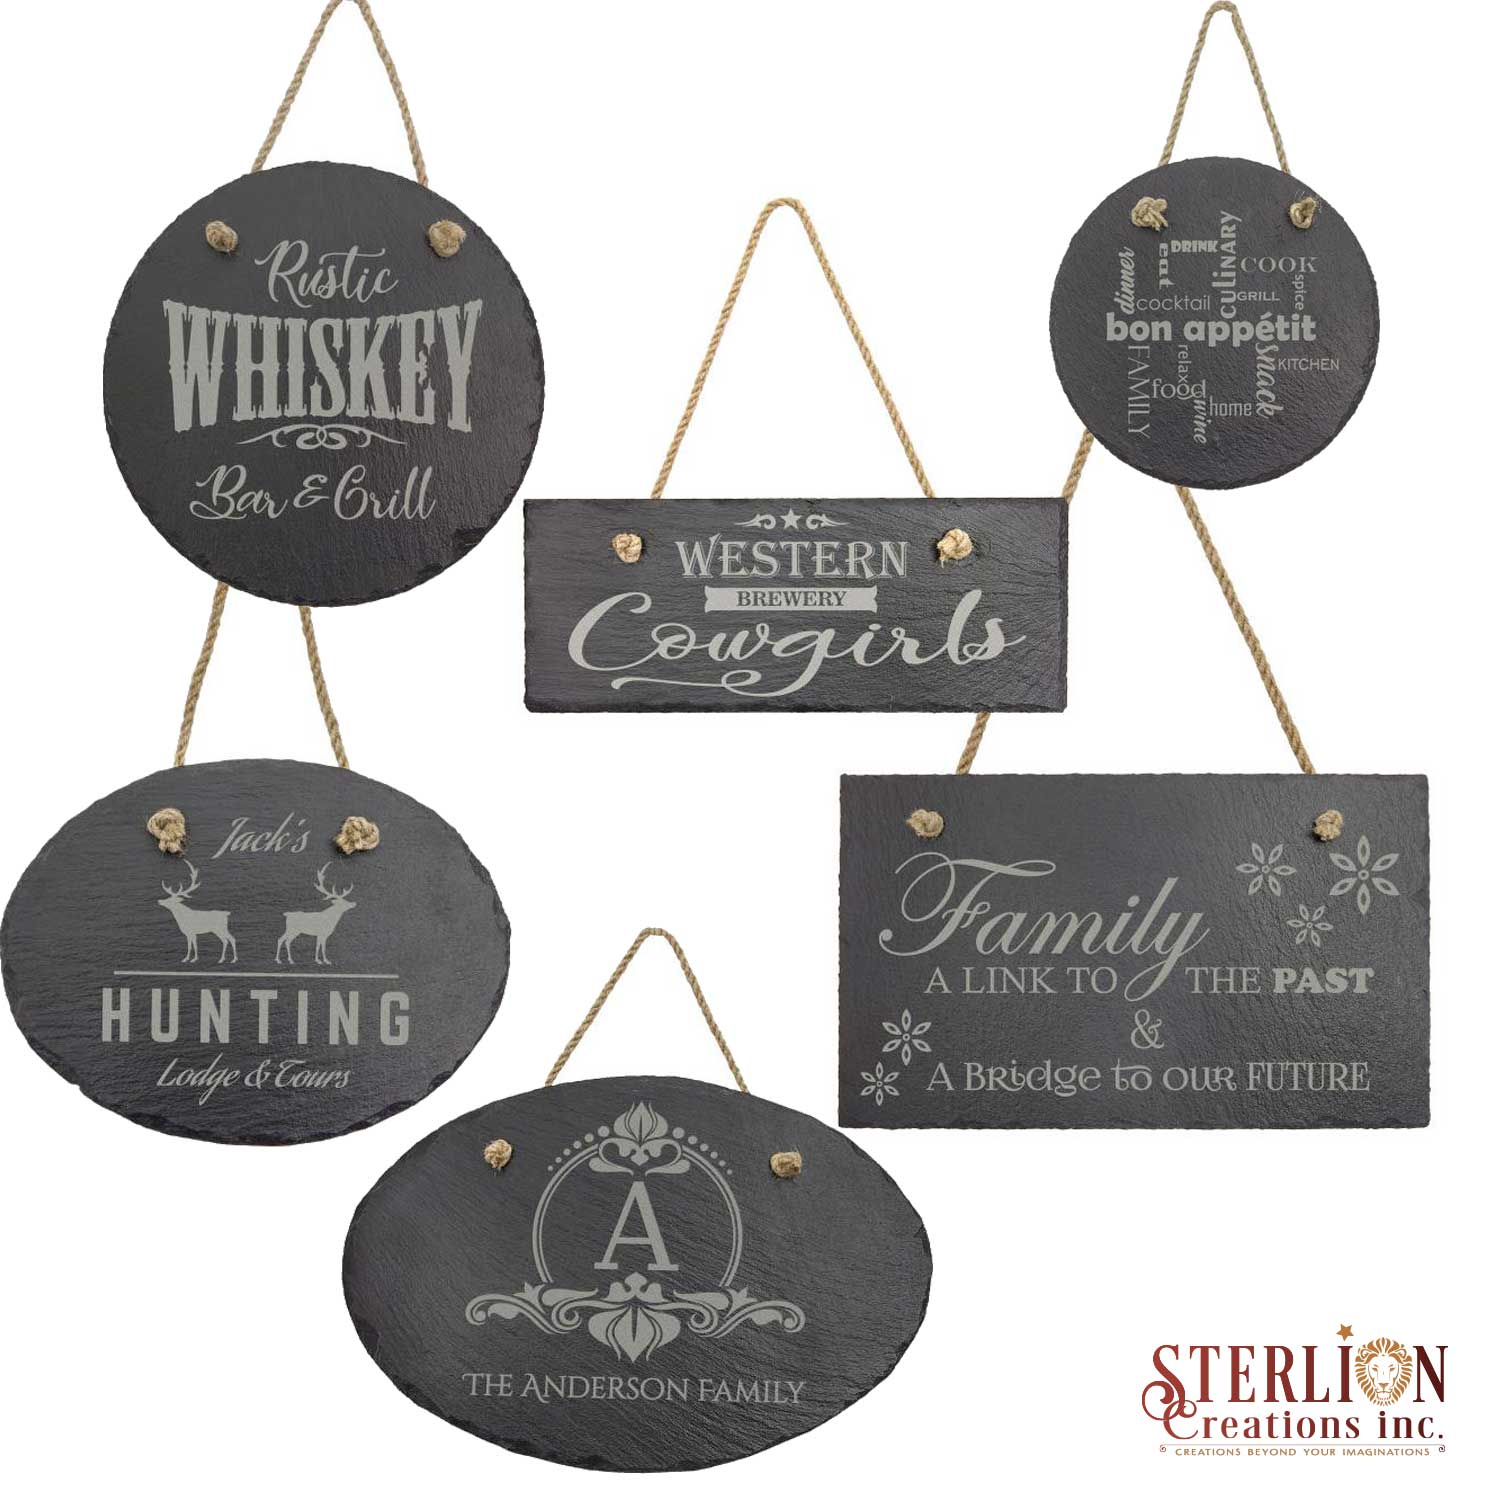 sterlion-creations-custom-slates